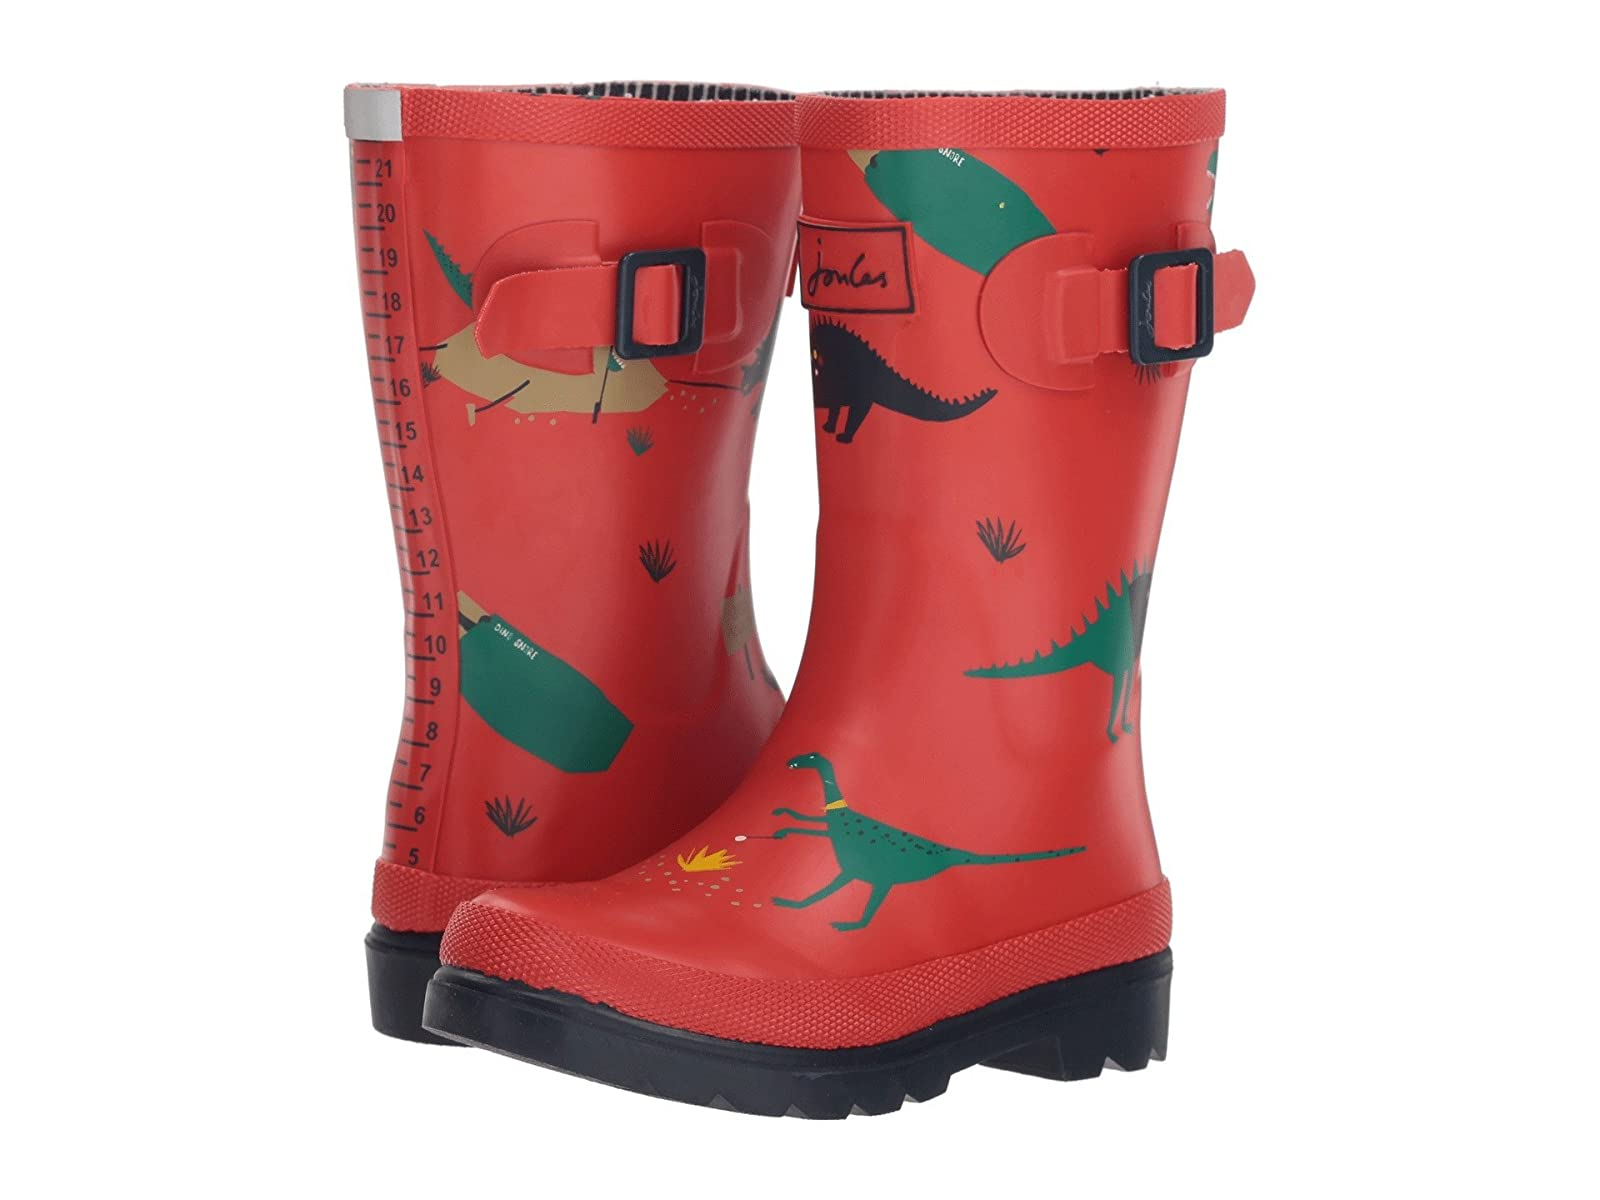 Joules Kids Printed Welly Rain Boot (Toddler/Little Kid/Big Kid)Affordable and distinctive shoes